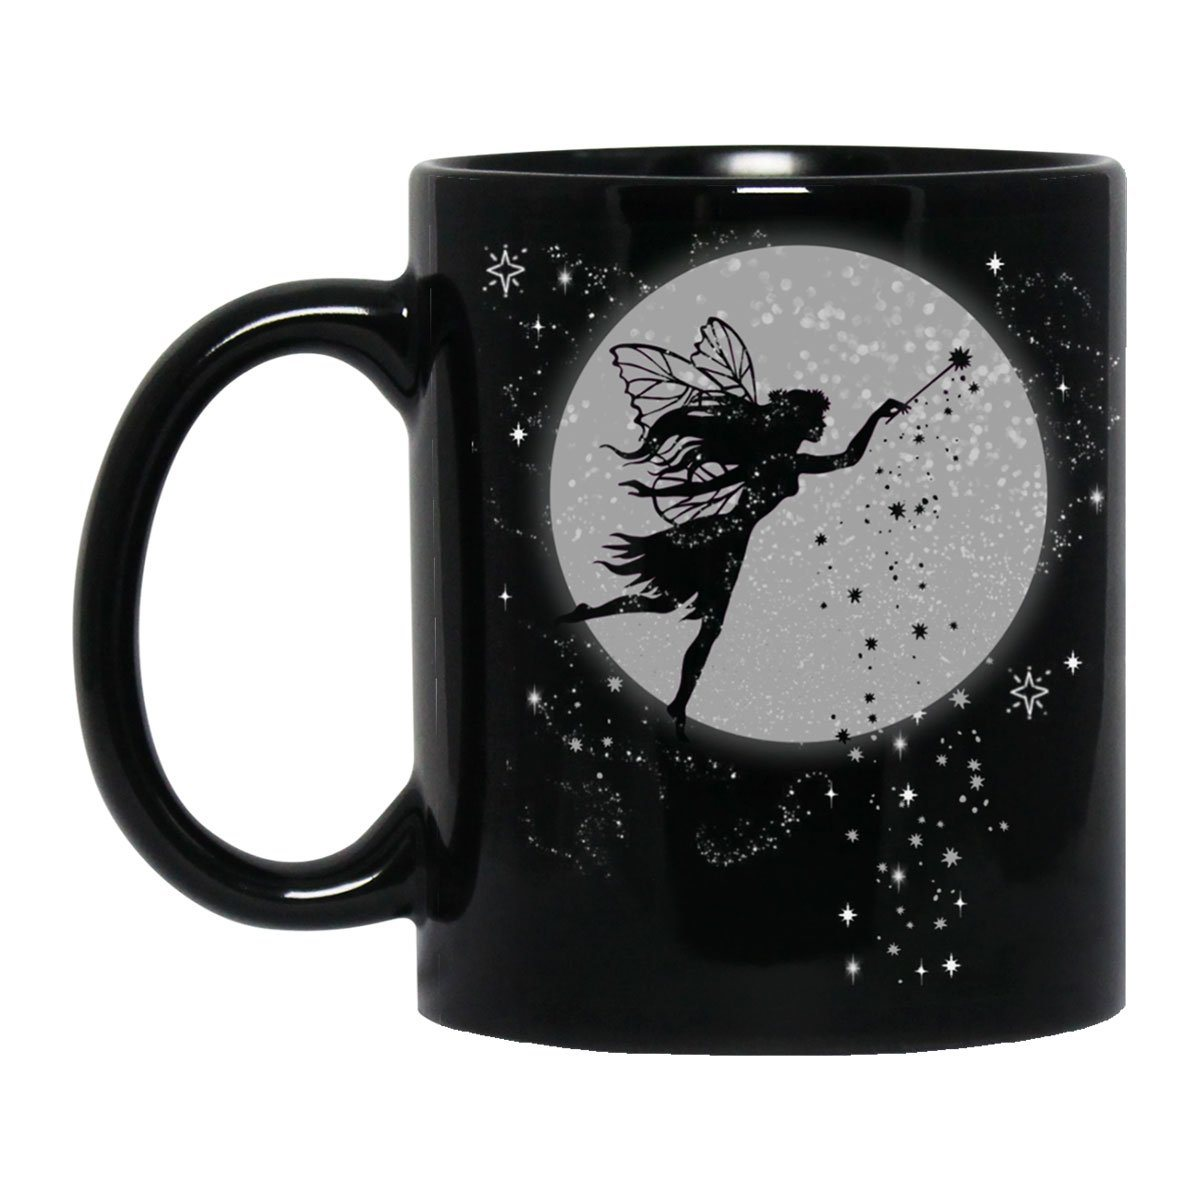 Fairy Dust Black Mug Drinkware Black One Size